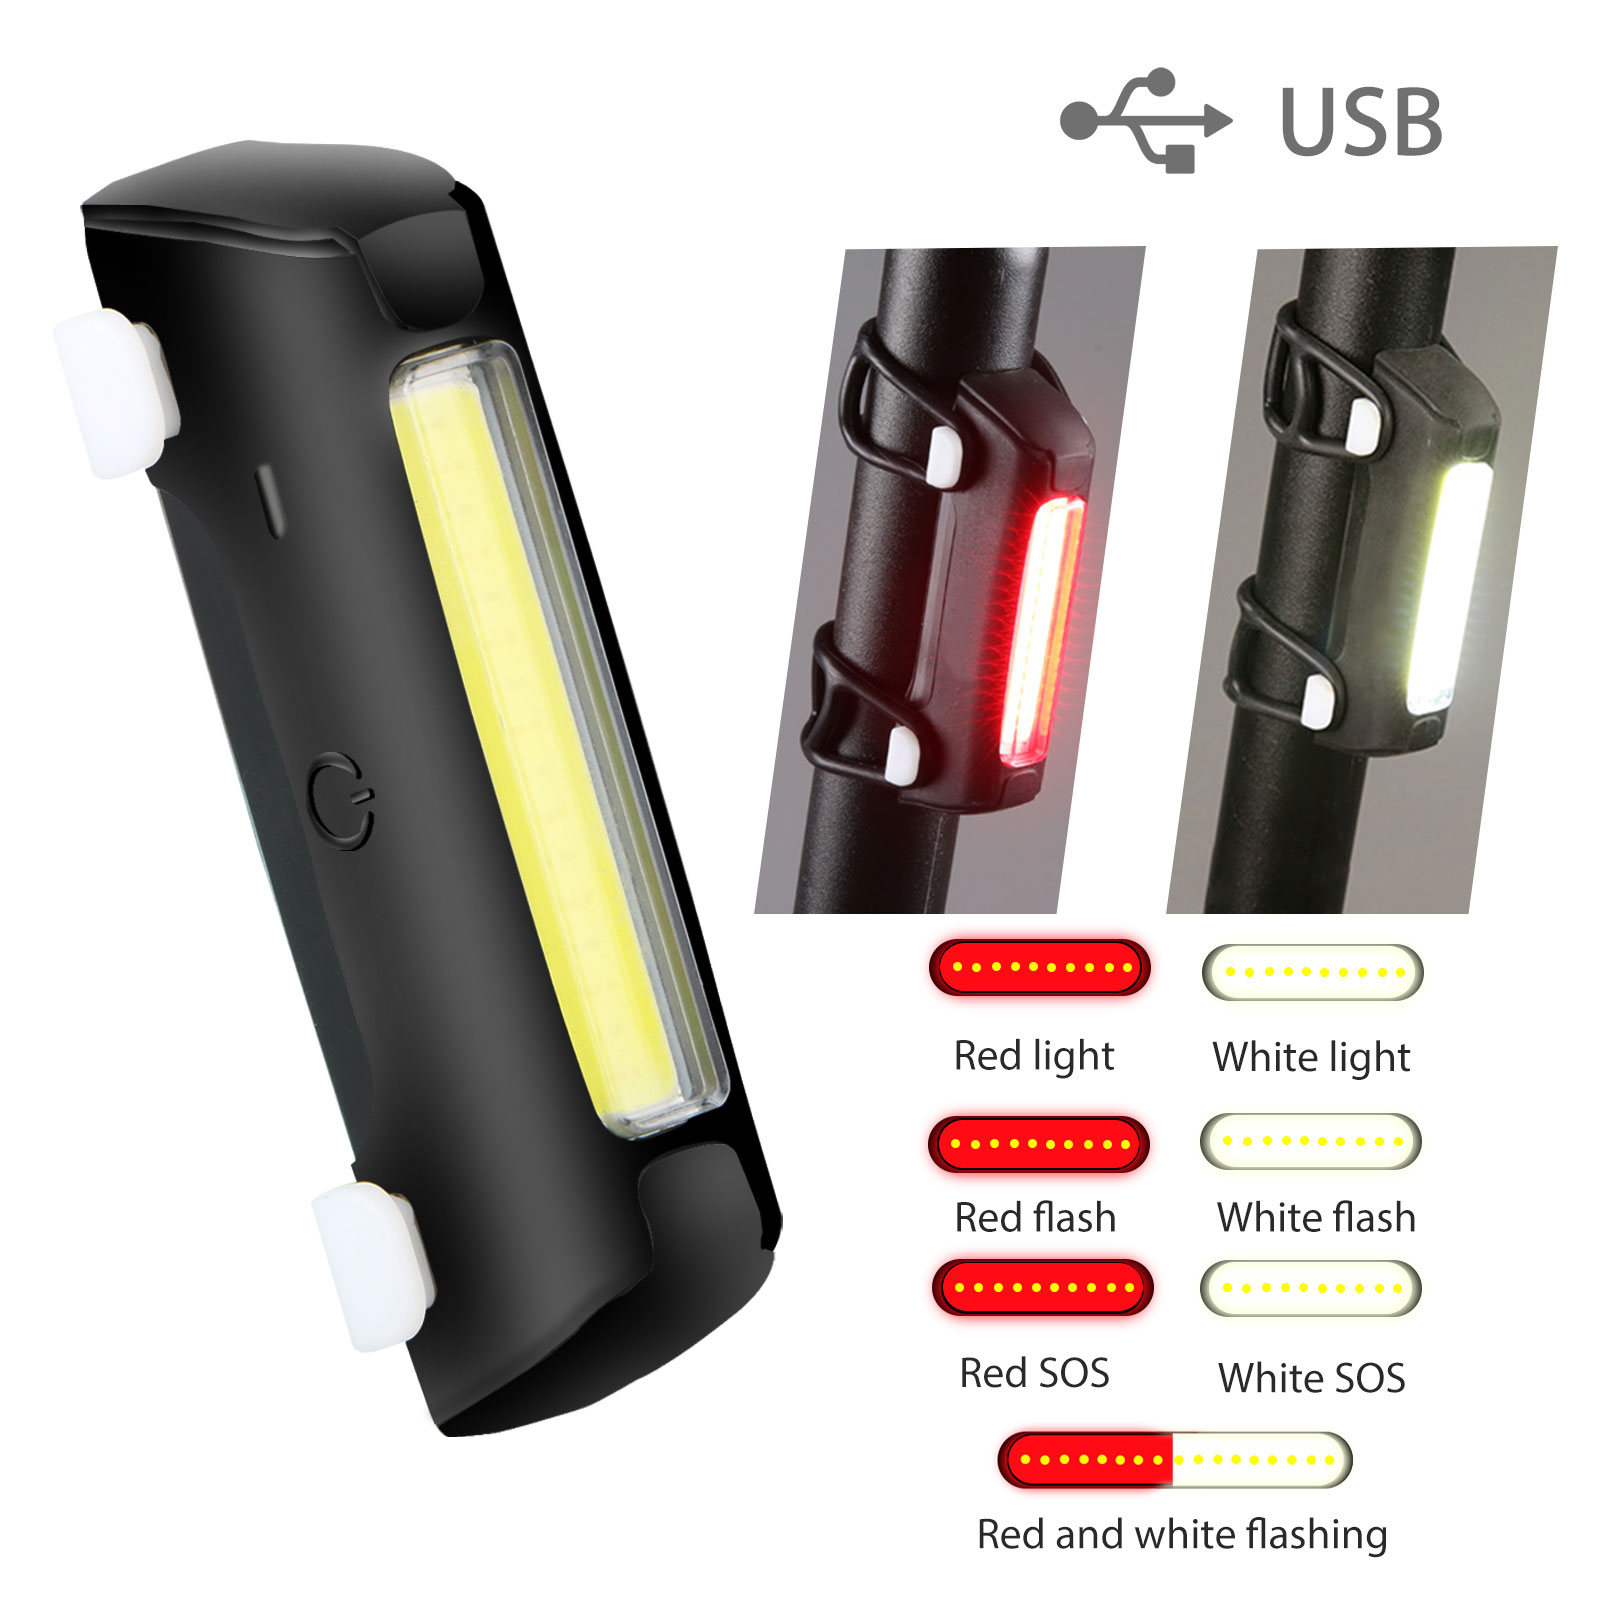 93603cae6e3 Image is loading LED-USB-Rechargeable-Bicycle-Bike-Cycling-Front-Tail-